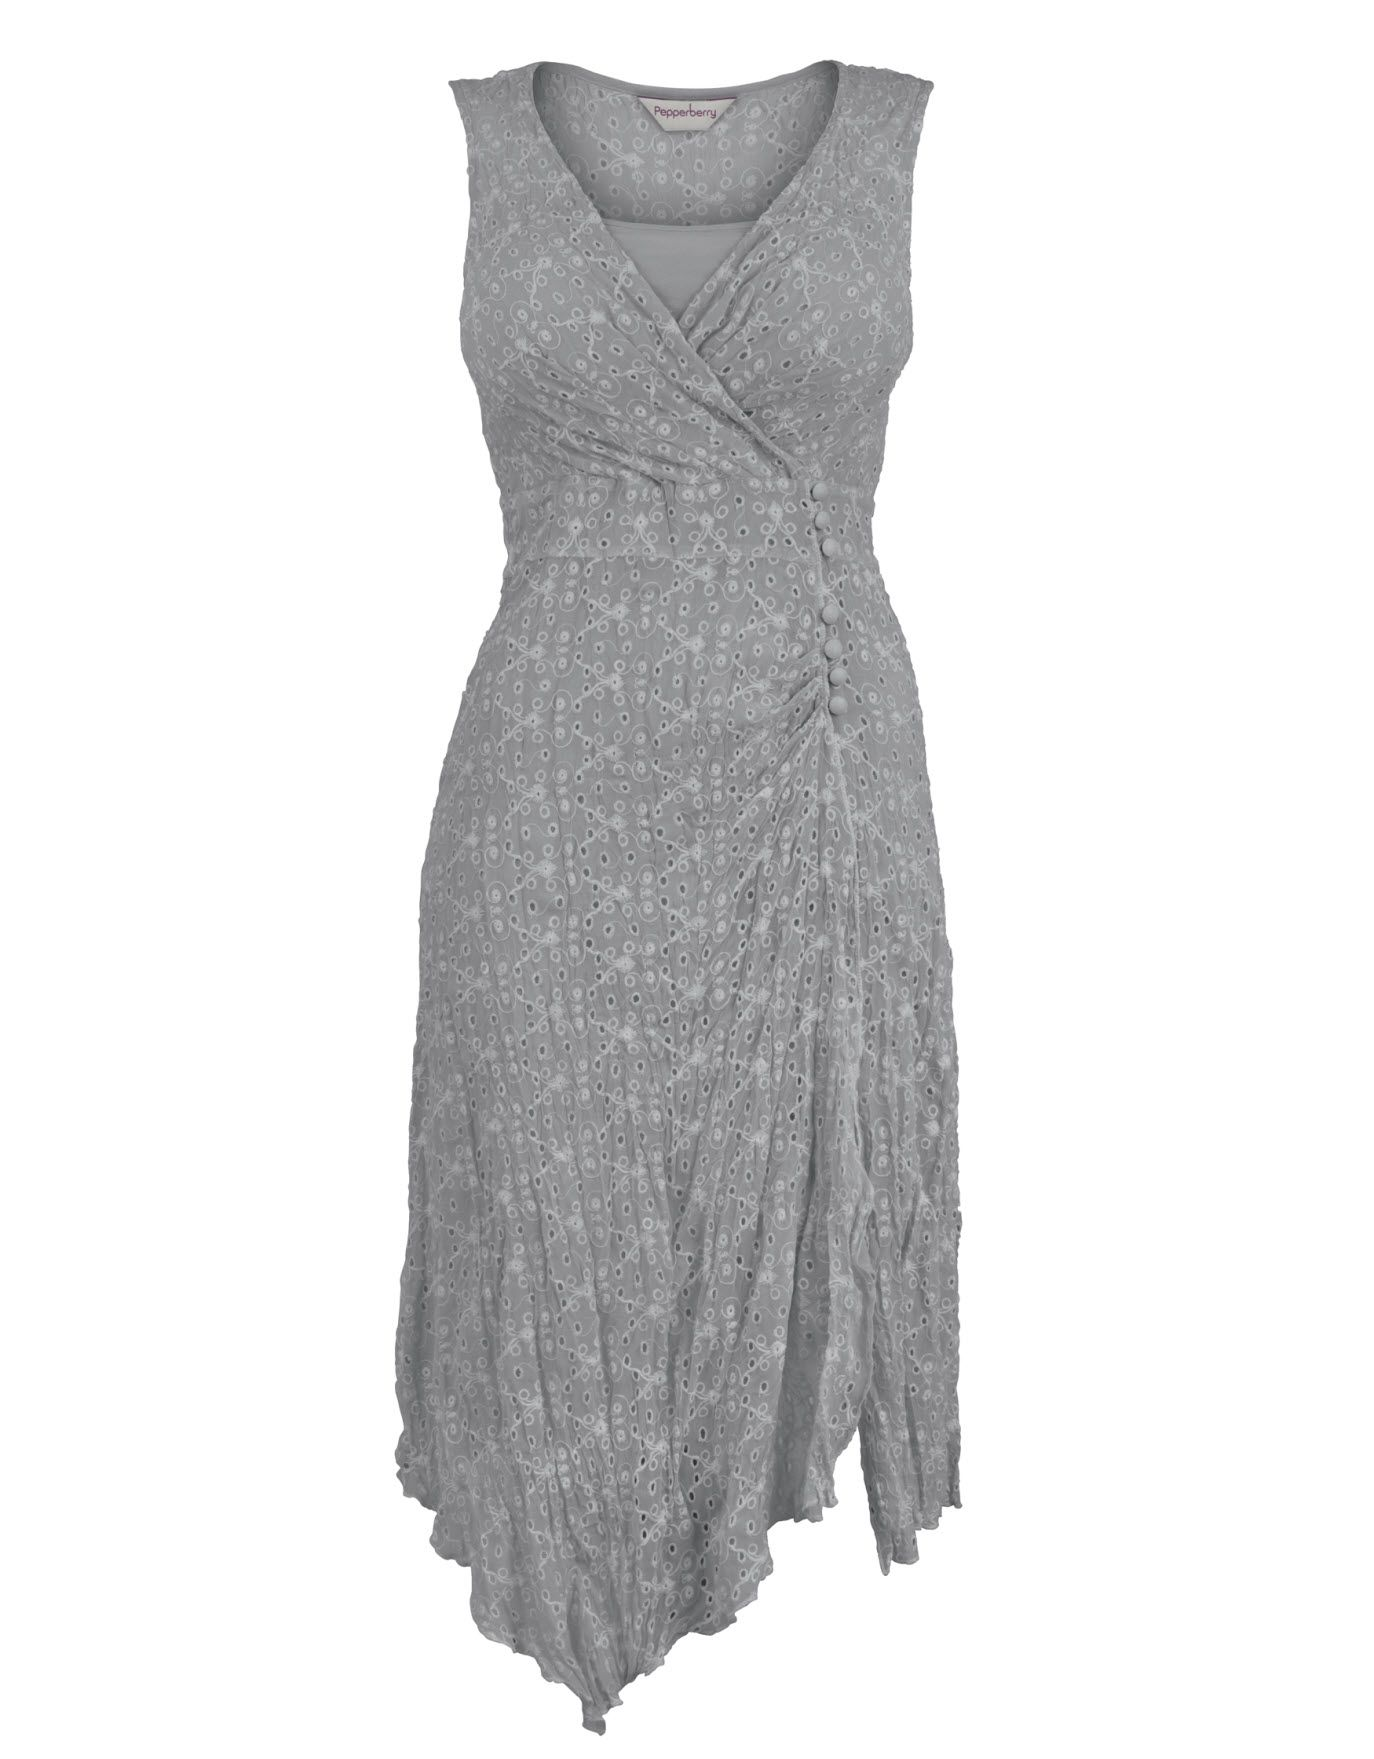 Broderie dress from pepperberry my style pinterest day dresses